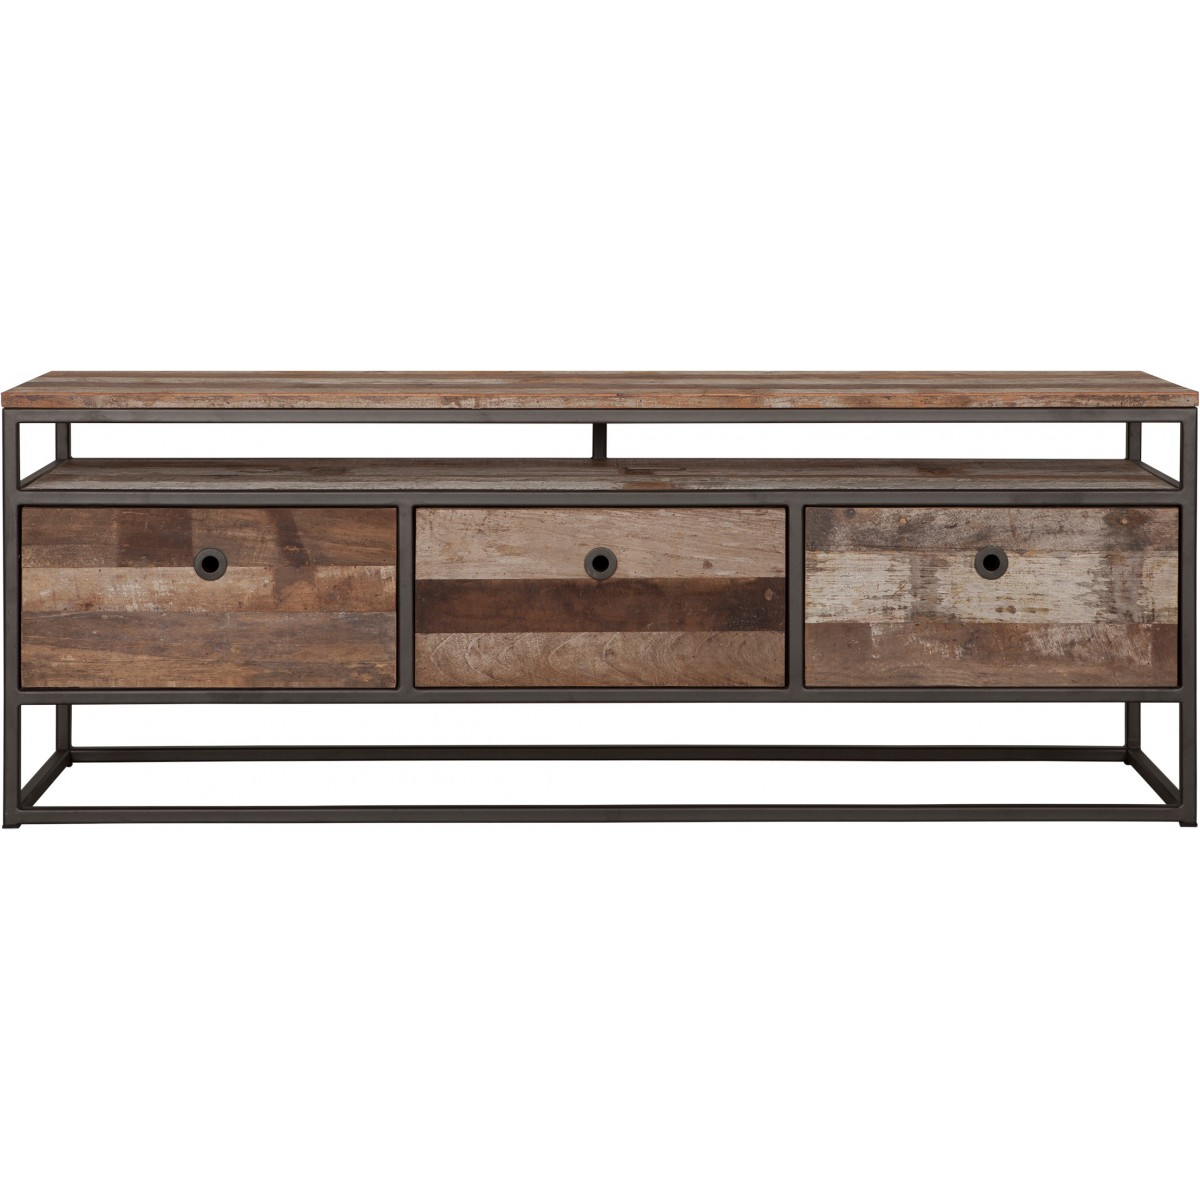 tuareg-dressoir-tv-meubel-no2-3-laden-55x150x40-cm-4-miltonhouse.